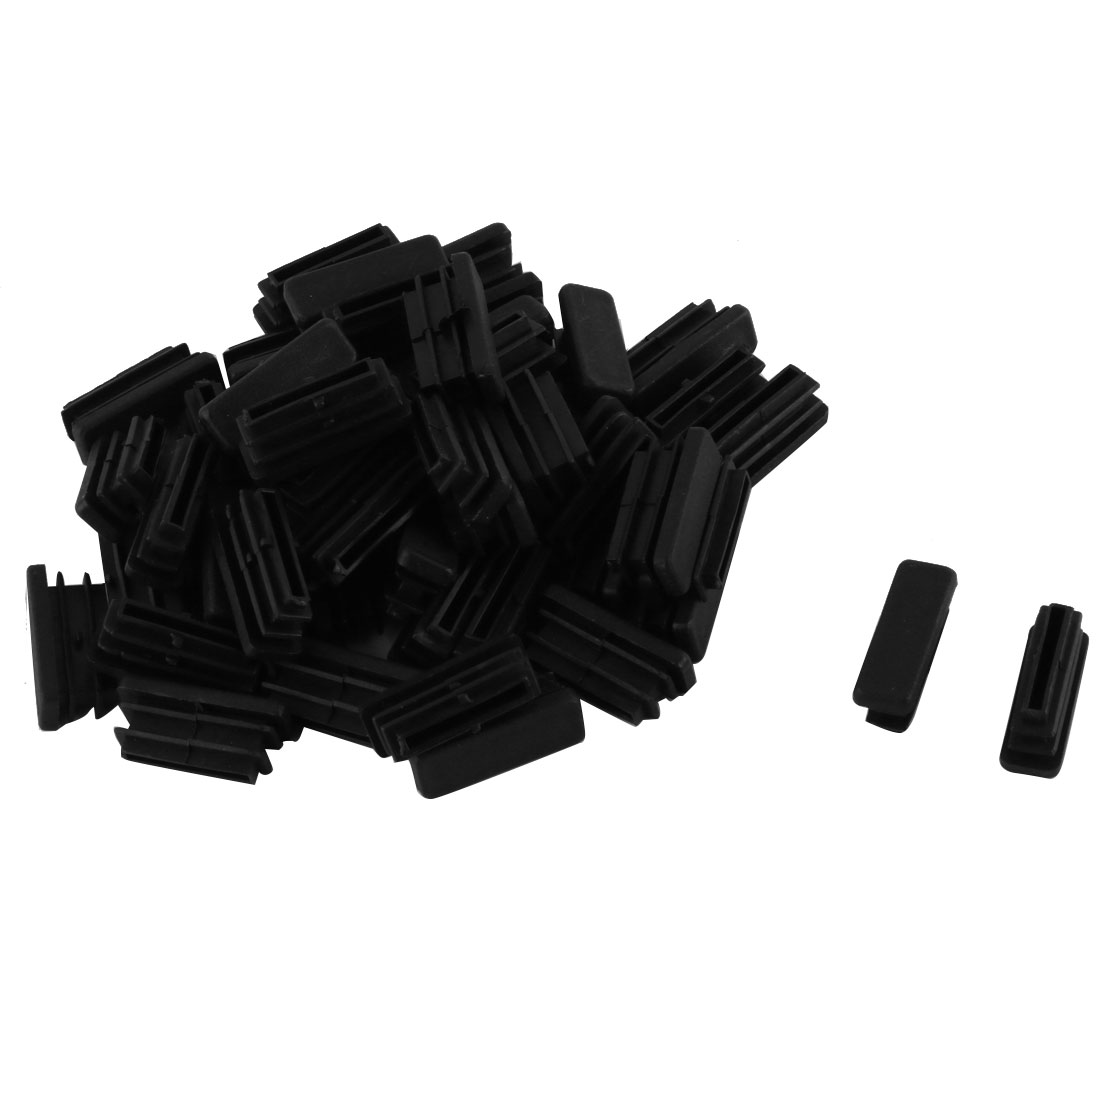 Household Plastic Rectangular Shaped Table Chair Leg Tube Pipe Insert Black 30 x 10mm 50 PCS